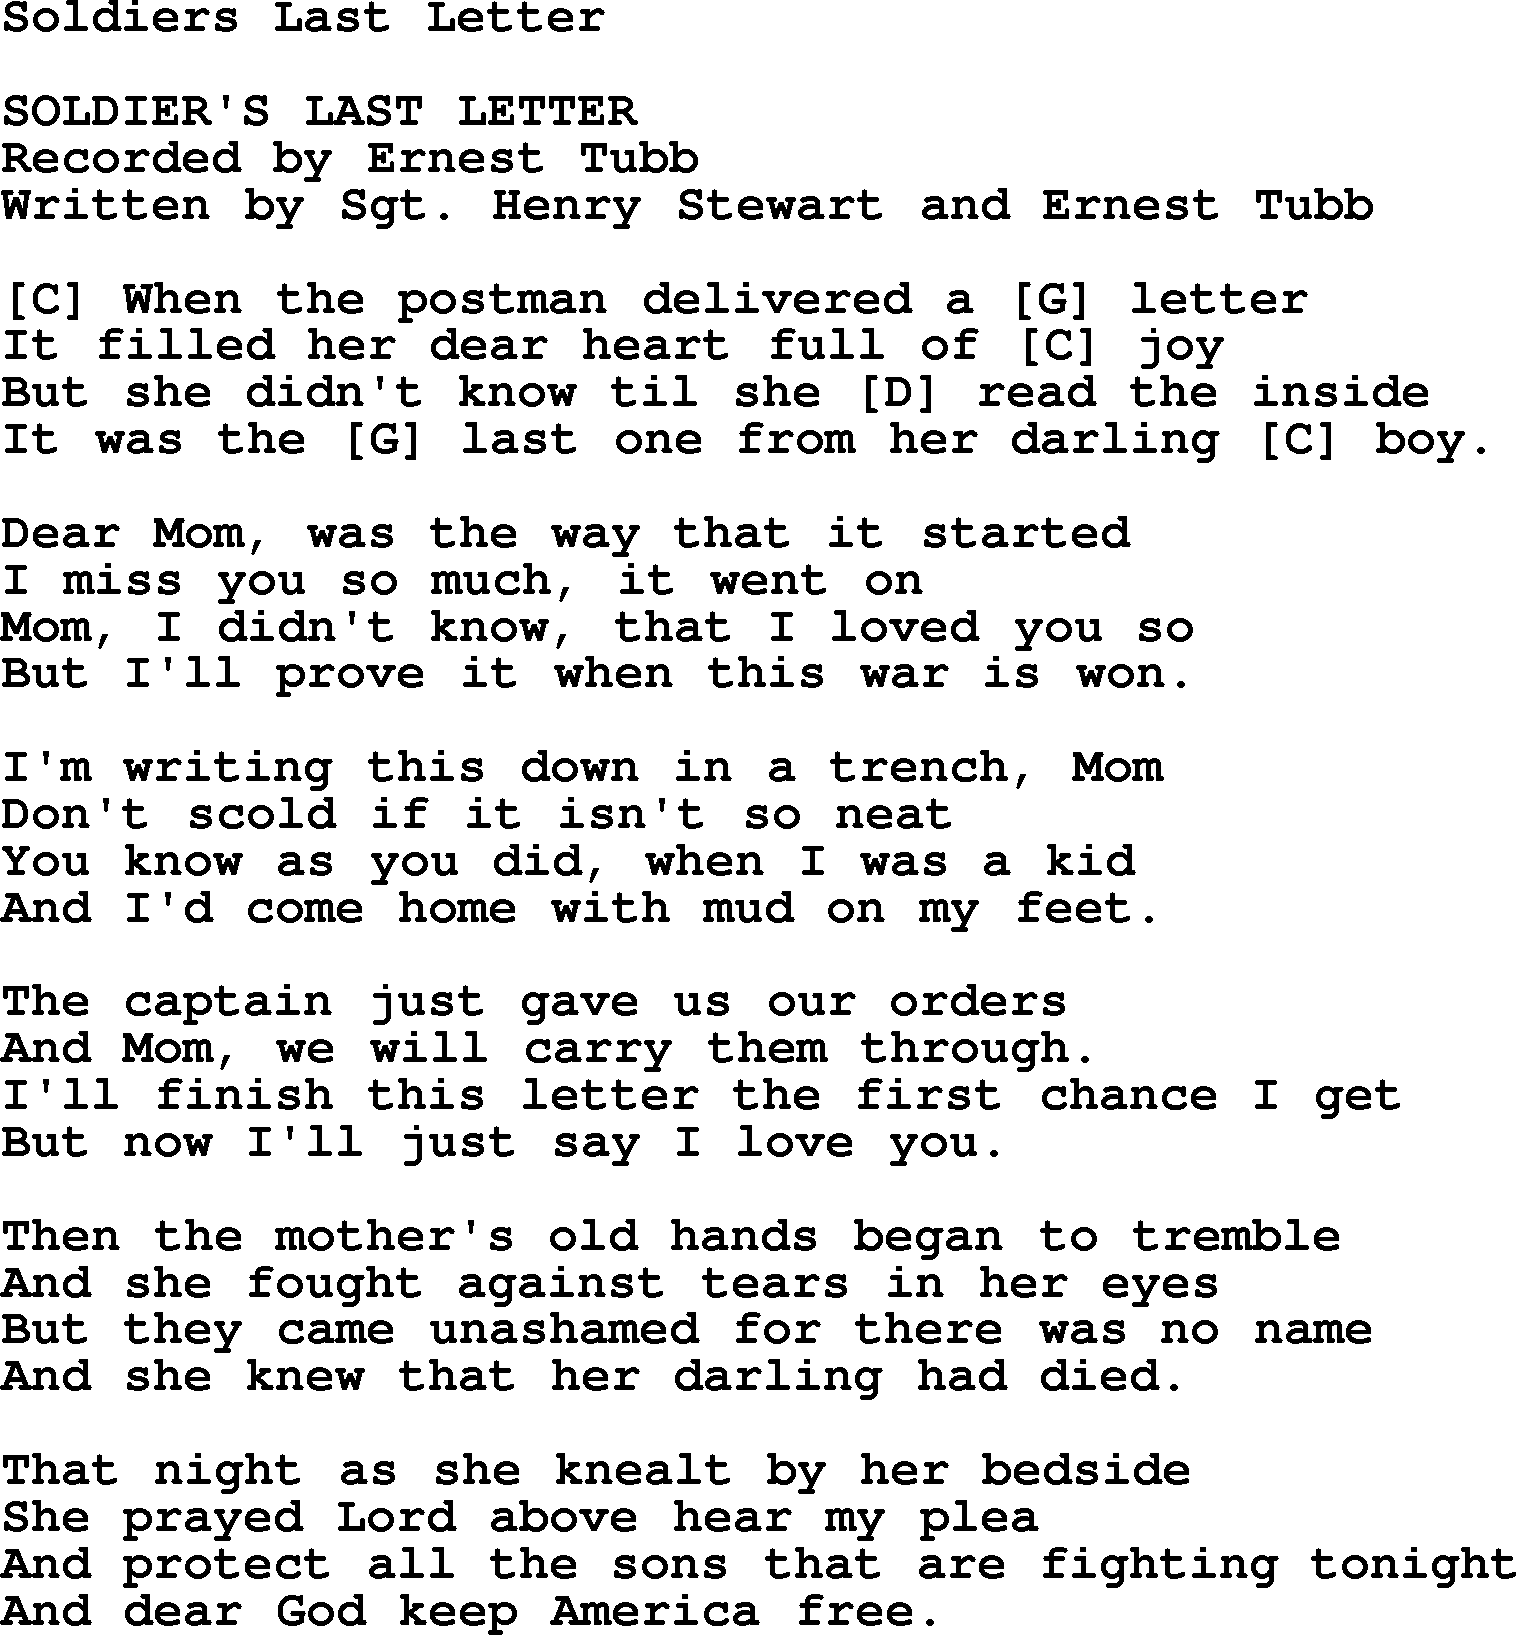 Soldiers Last Letter   Bluegrass lyrics with chords